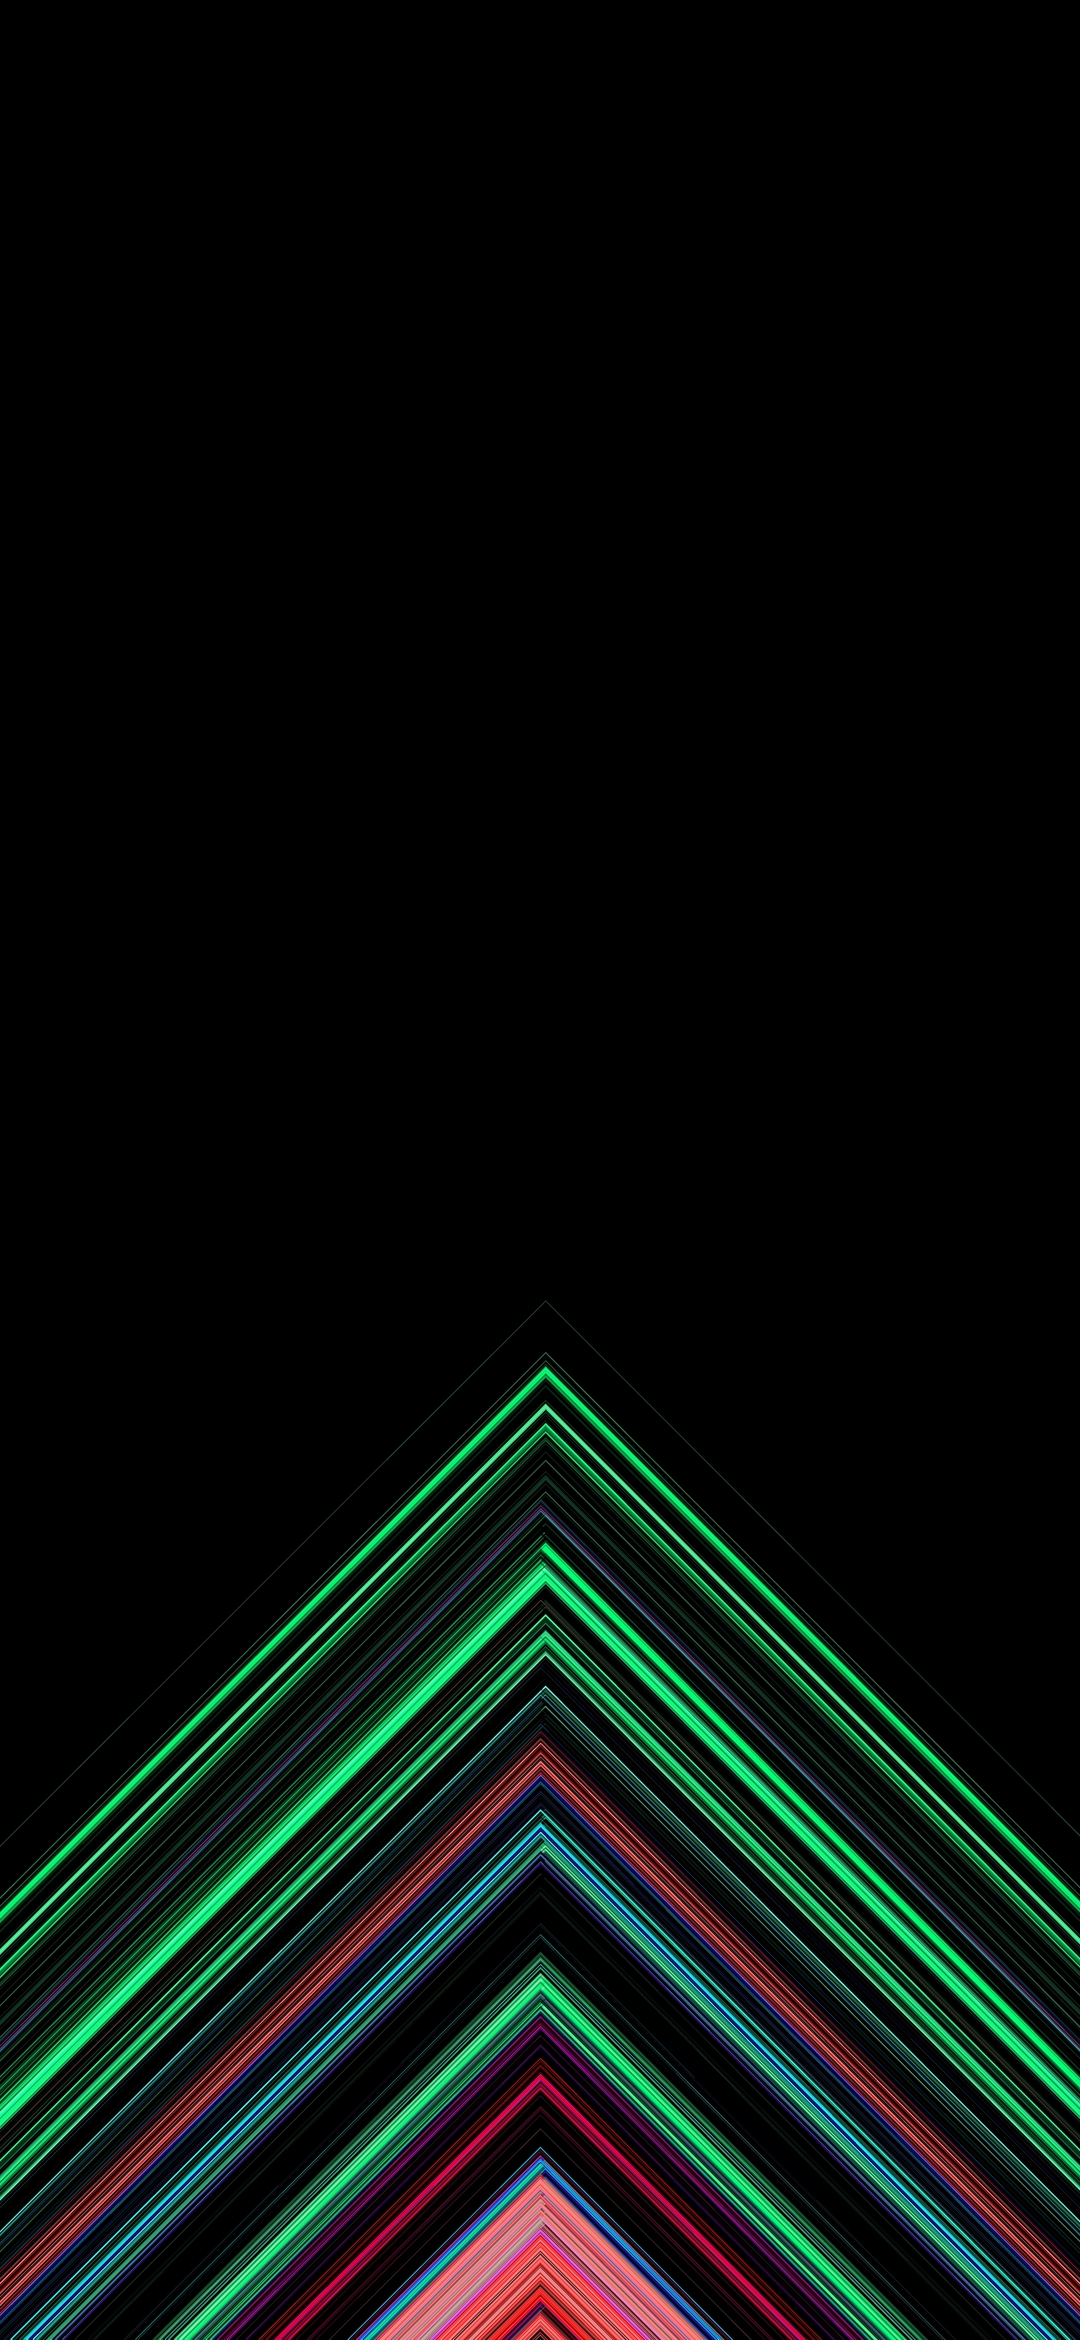 Amoled iPhone mobile Wallpaper 2